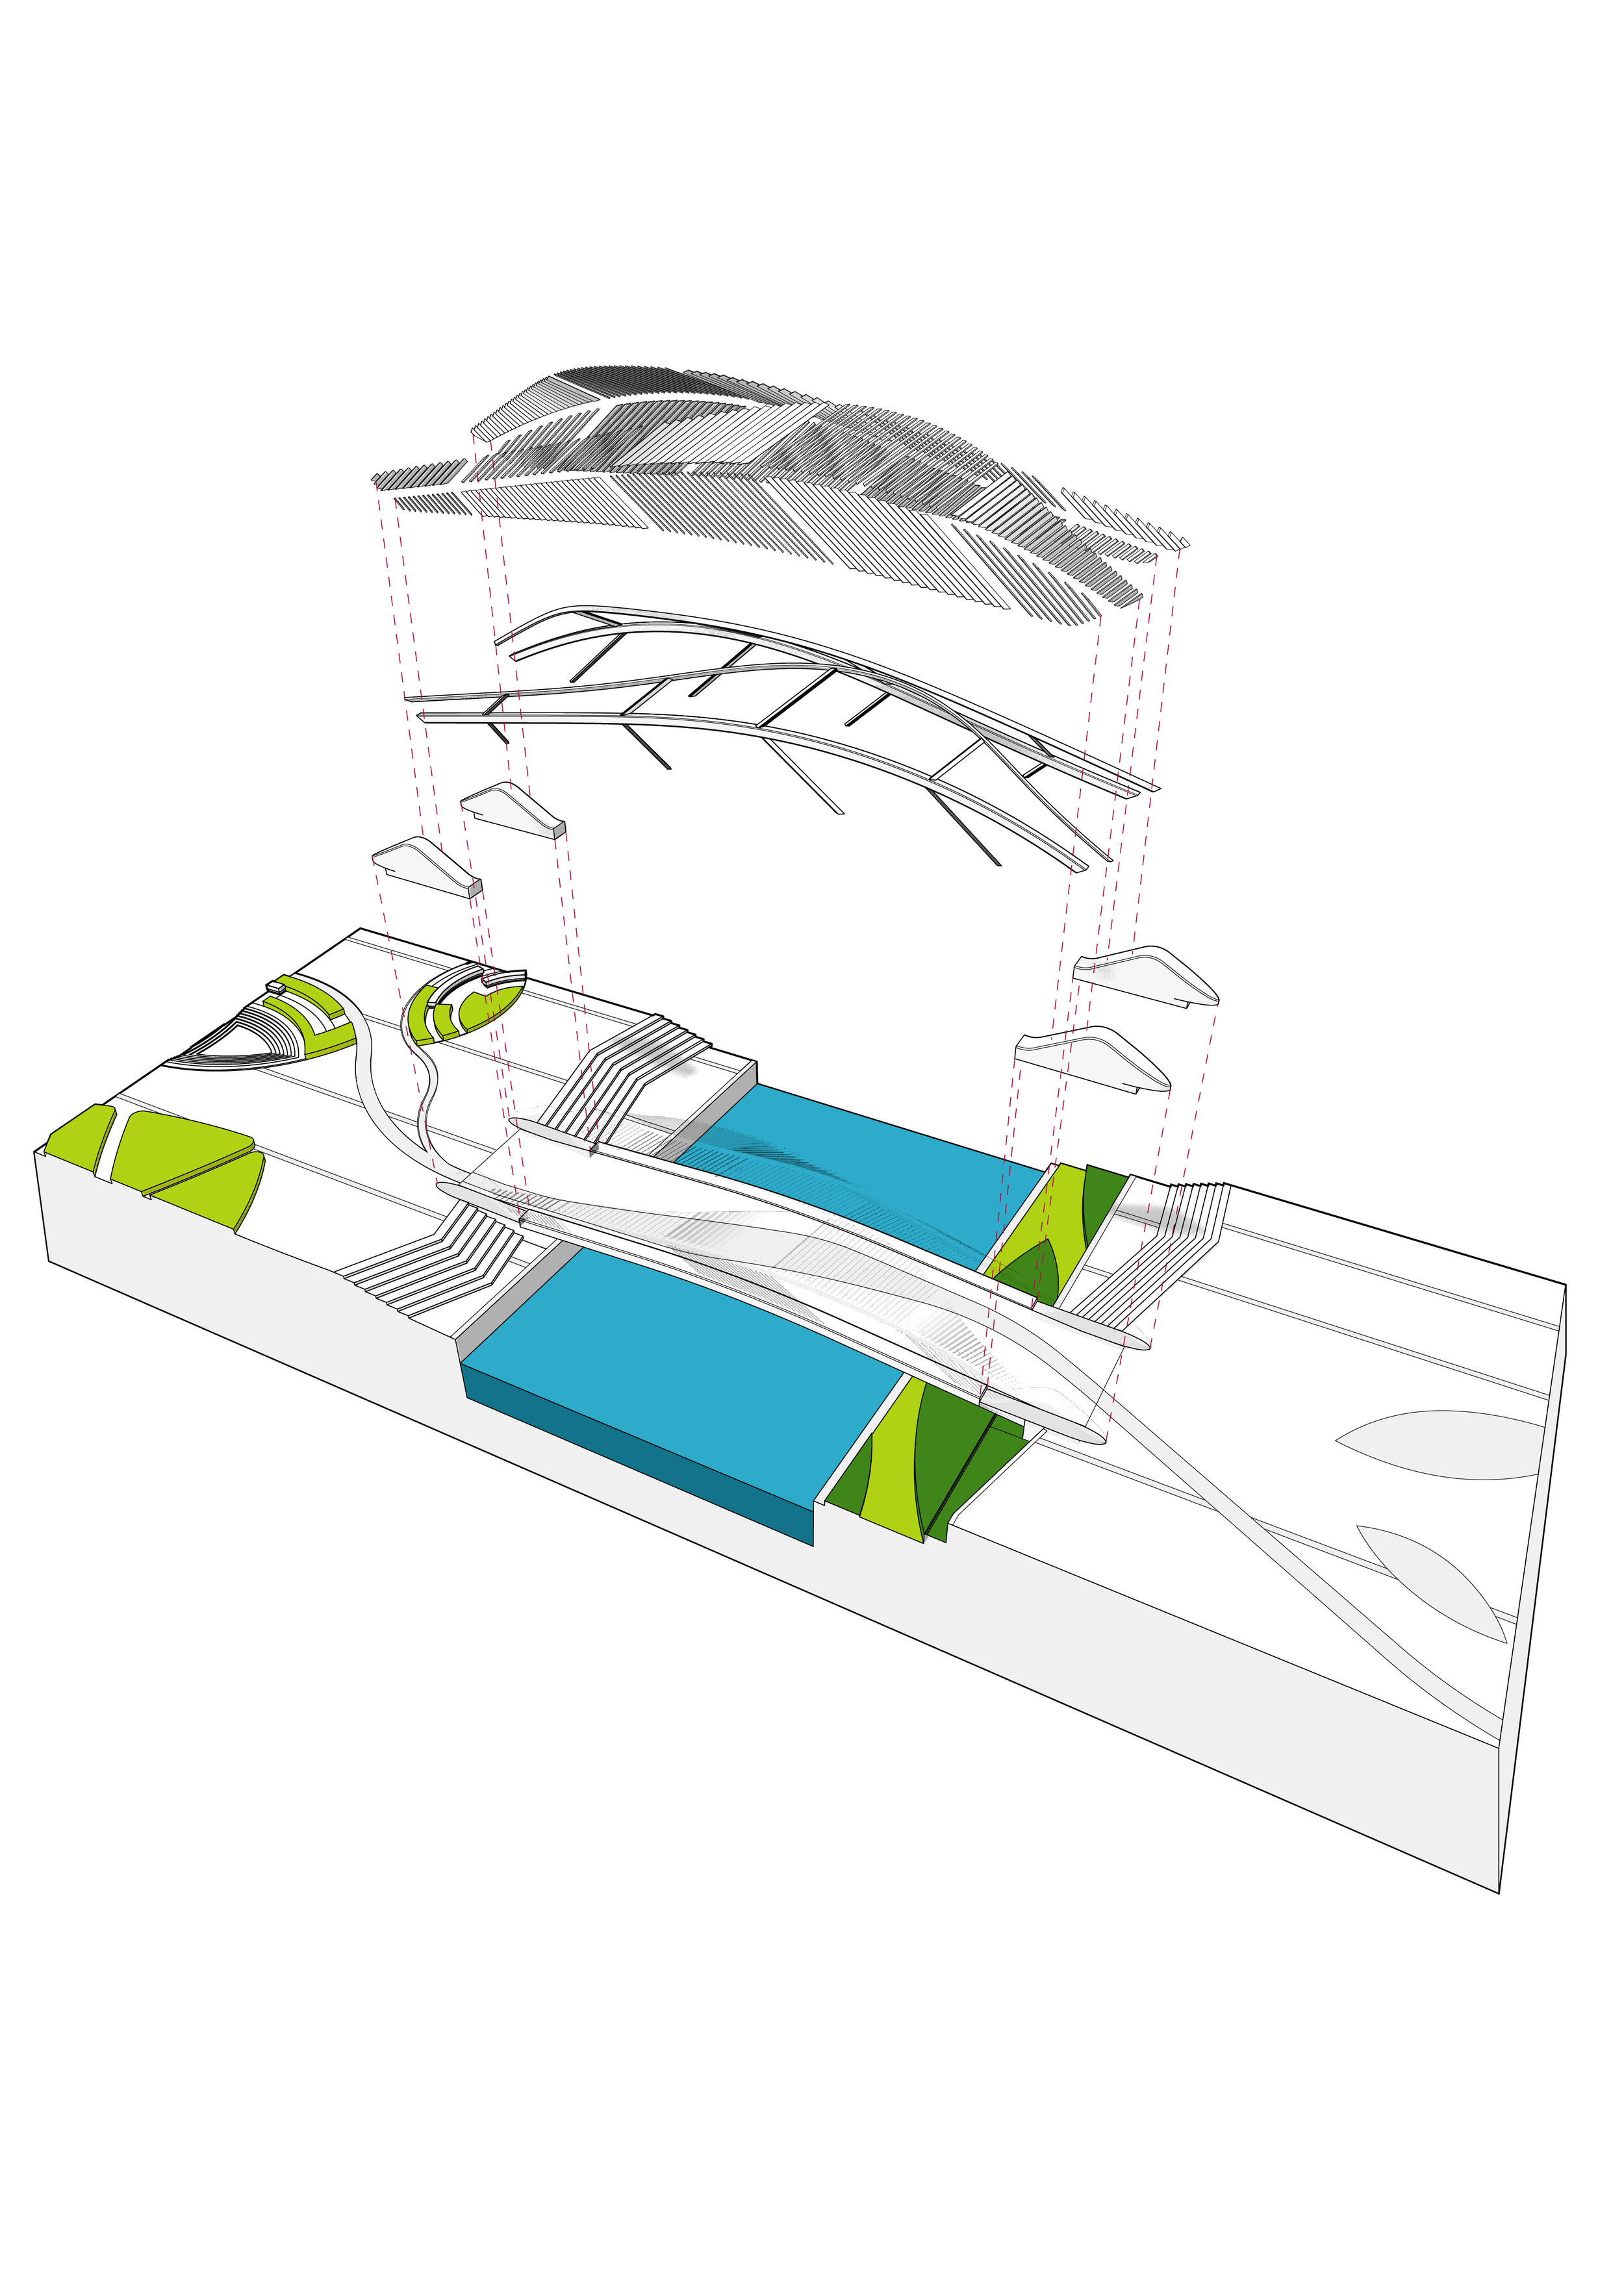 Diagram | Leaf vein patterns, structure and louver system